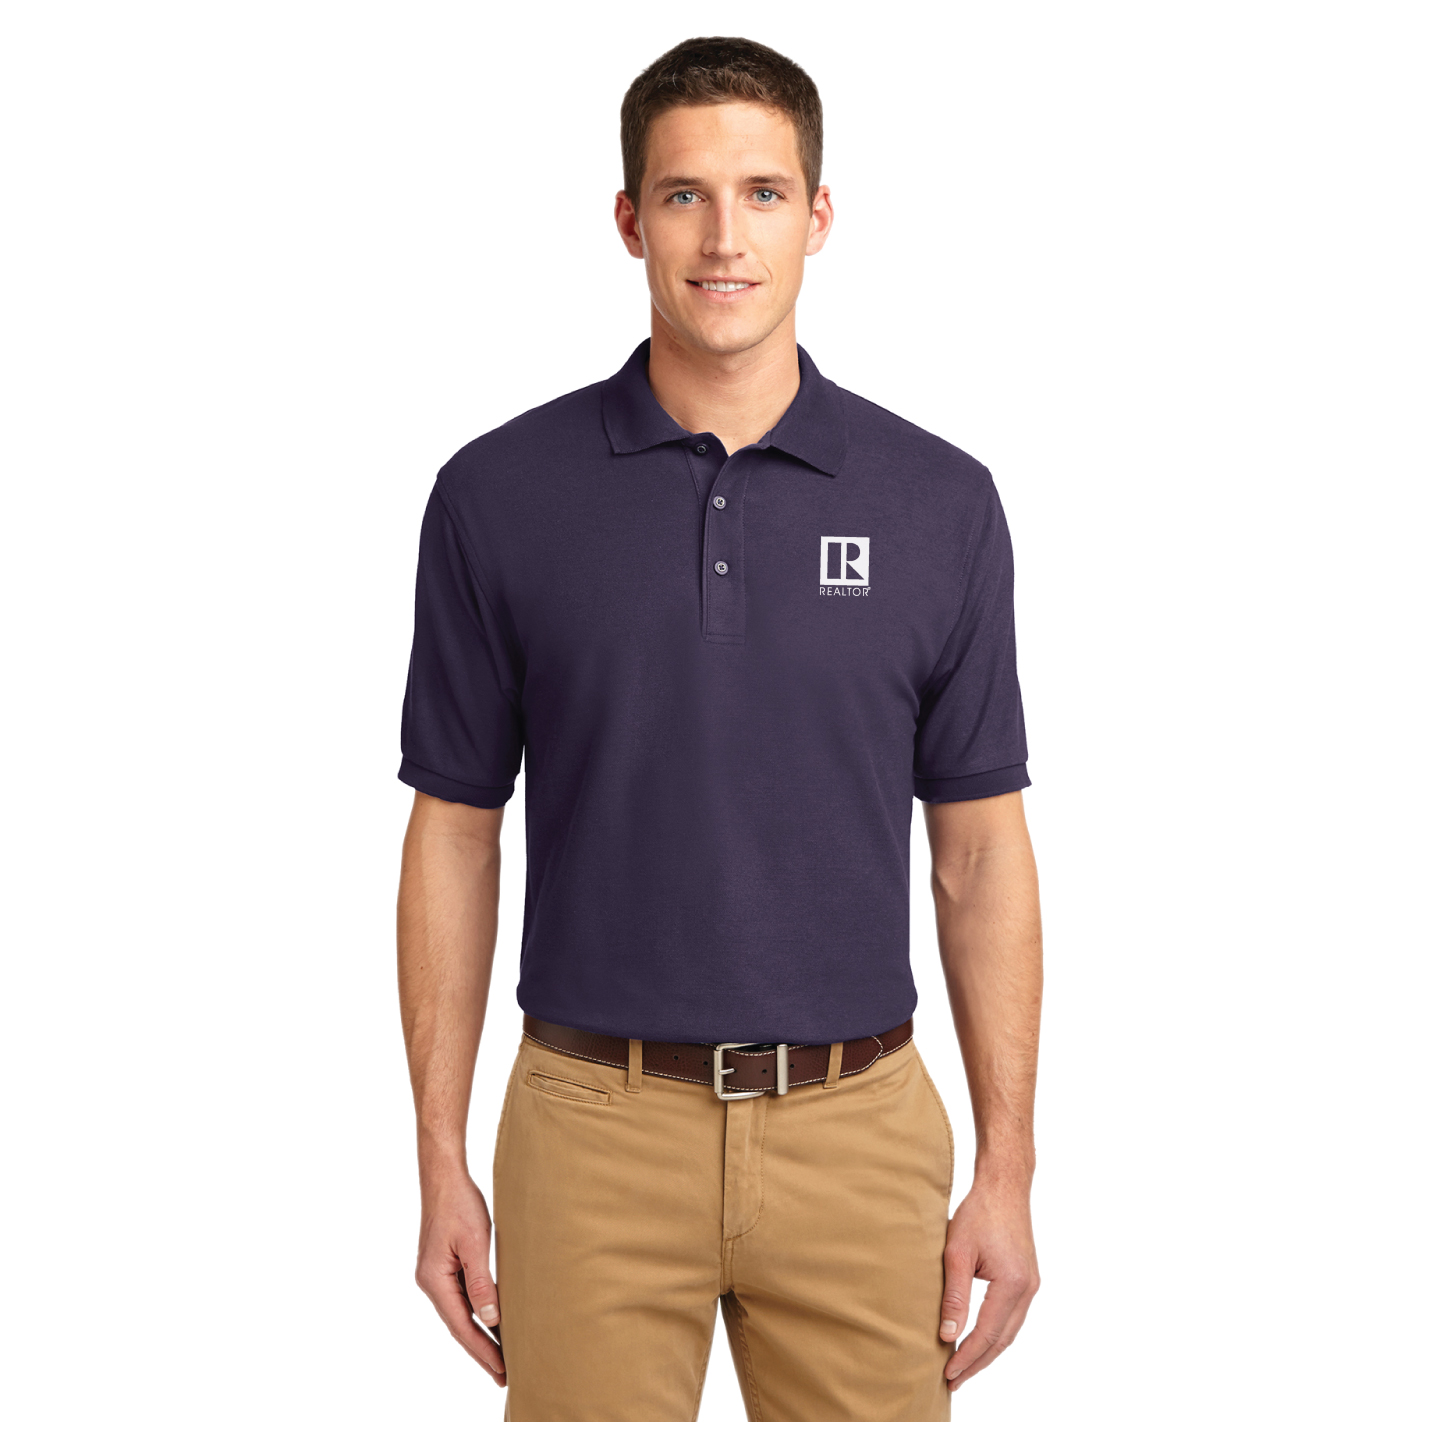 Mens Tall Pique Polo Shirt Golf, Polo, Polos, Golf Shirt, Tall, Big and Tall, Mens, Men